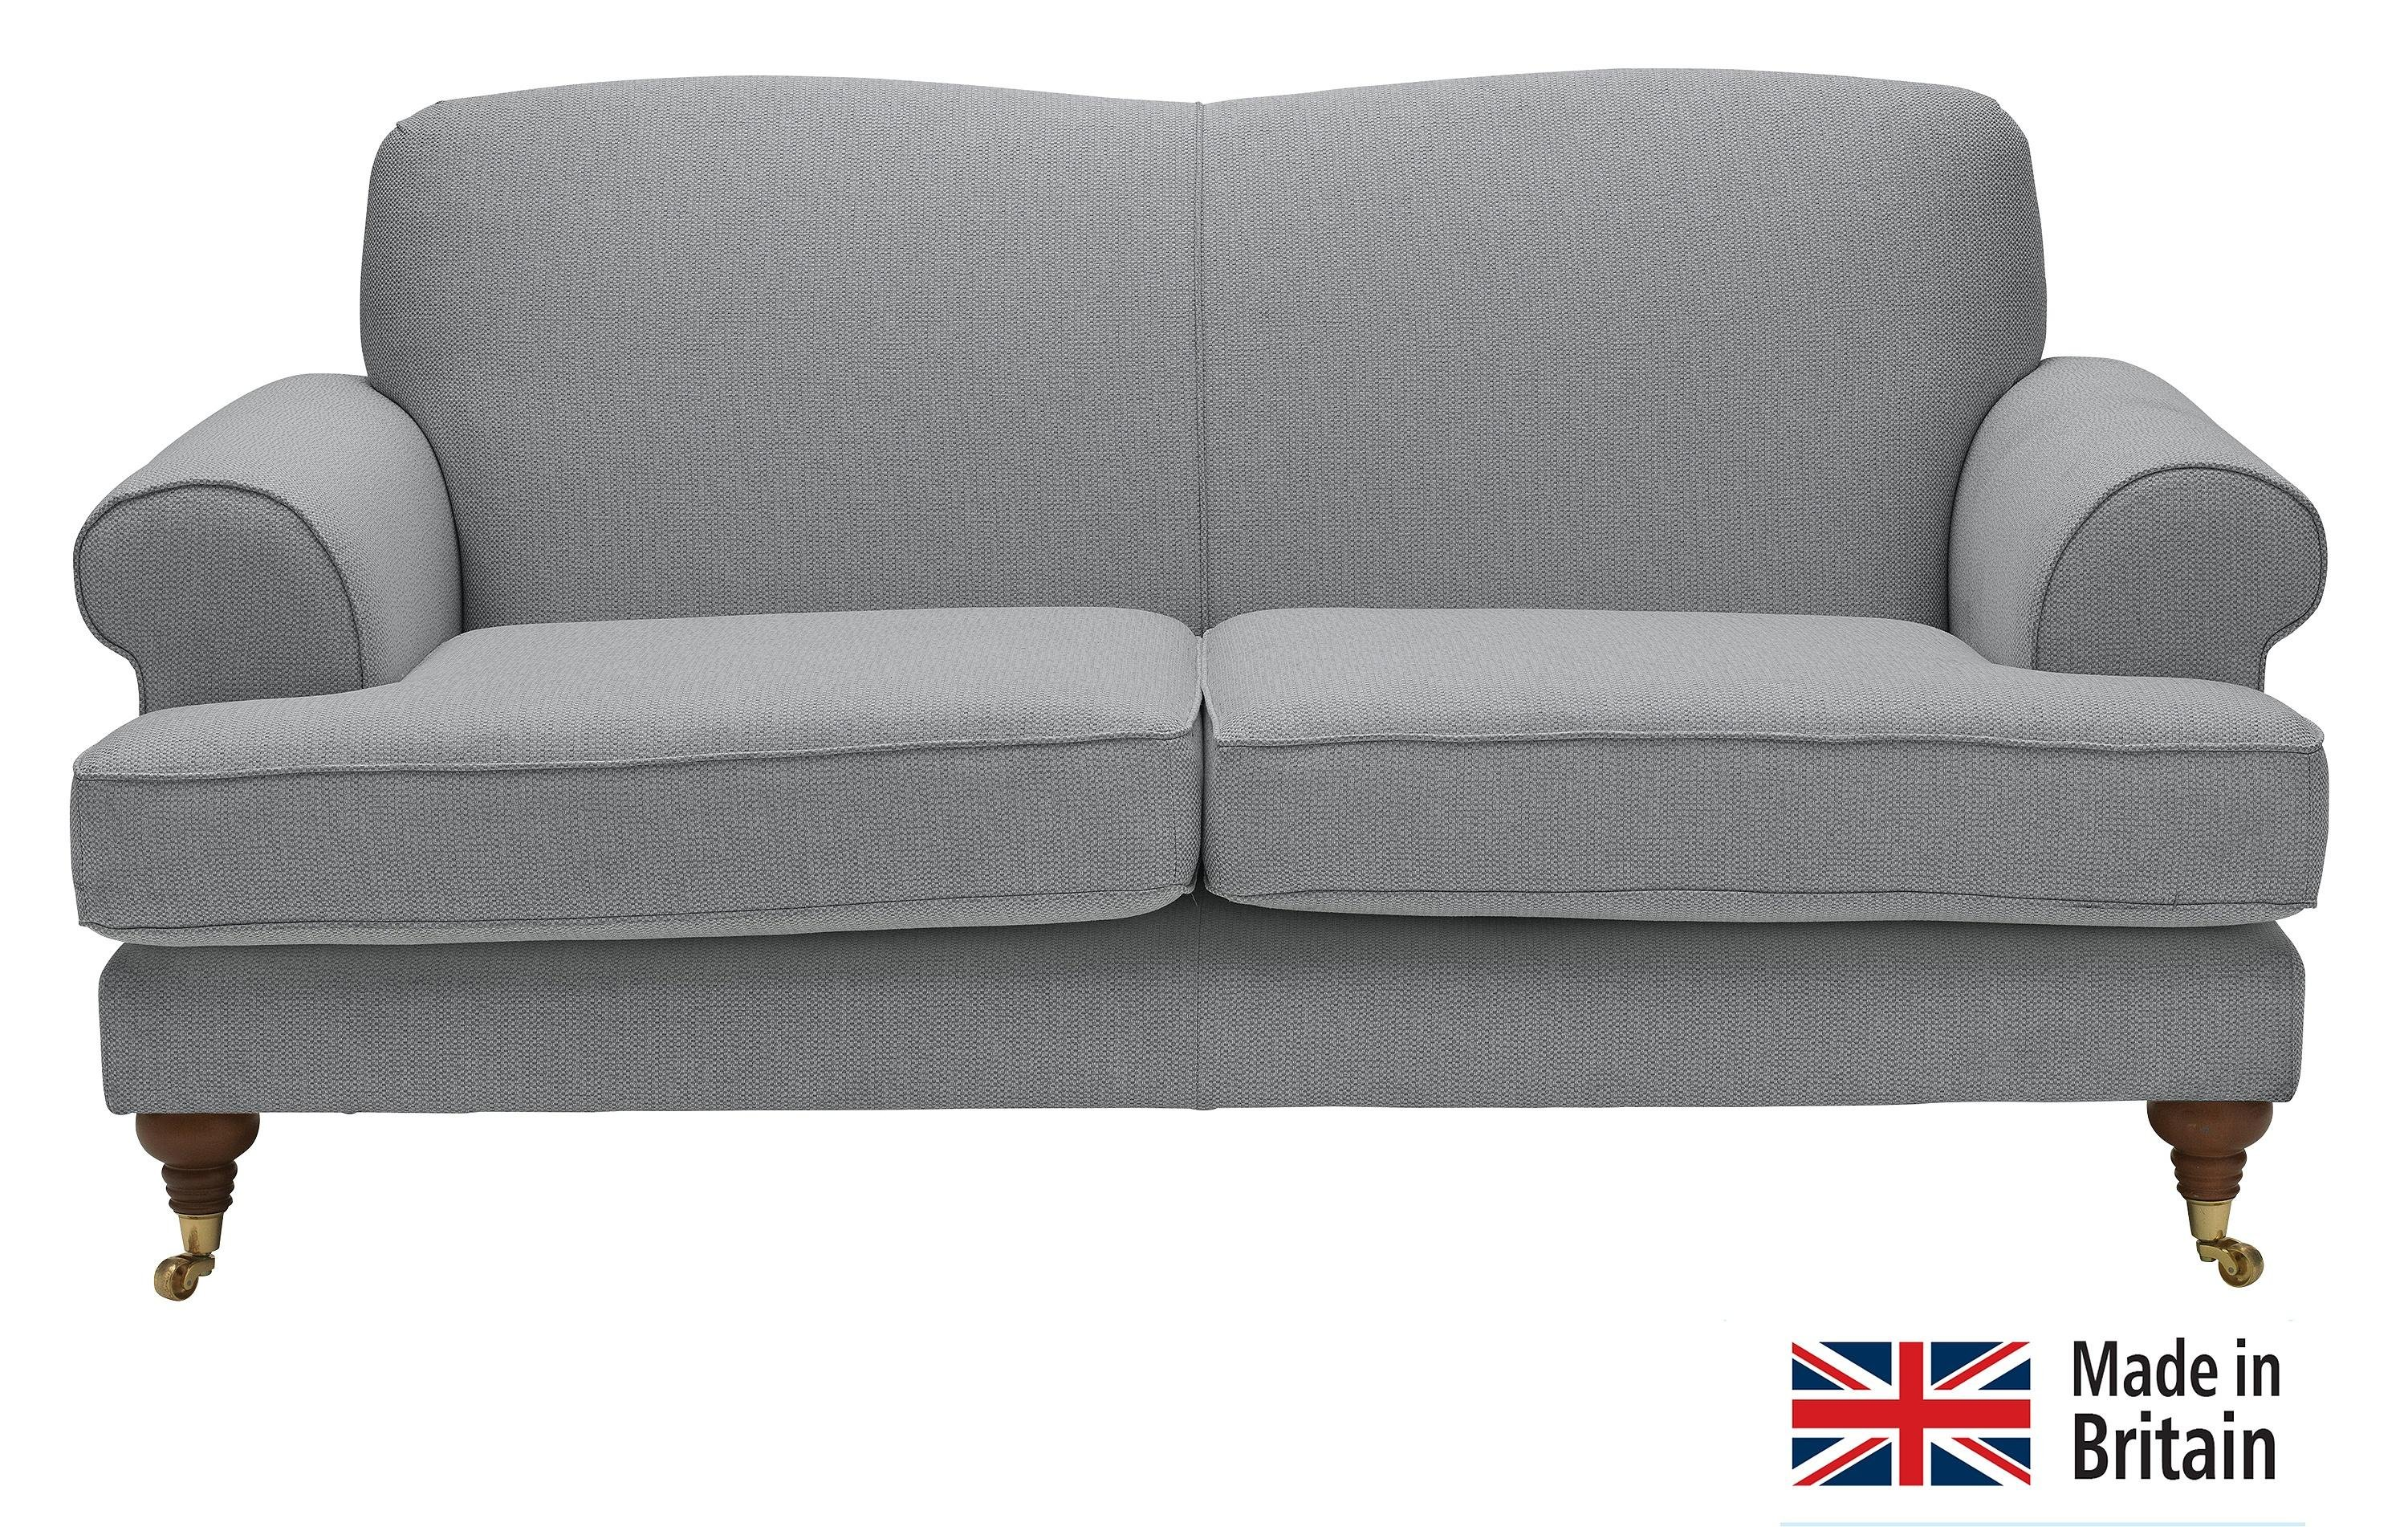 argos ava fabric sofa review low profile white leather heart of house sherbourne 2 seater